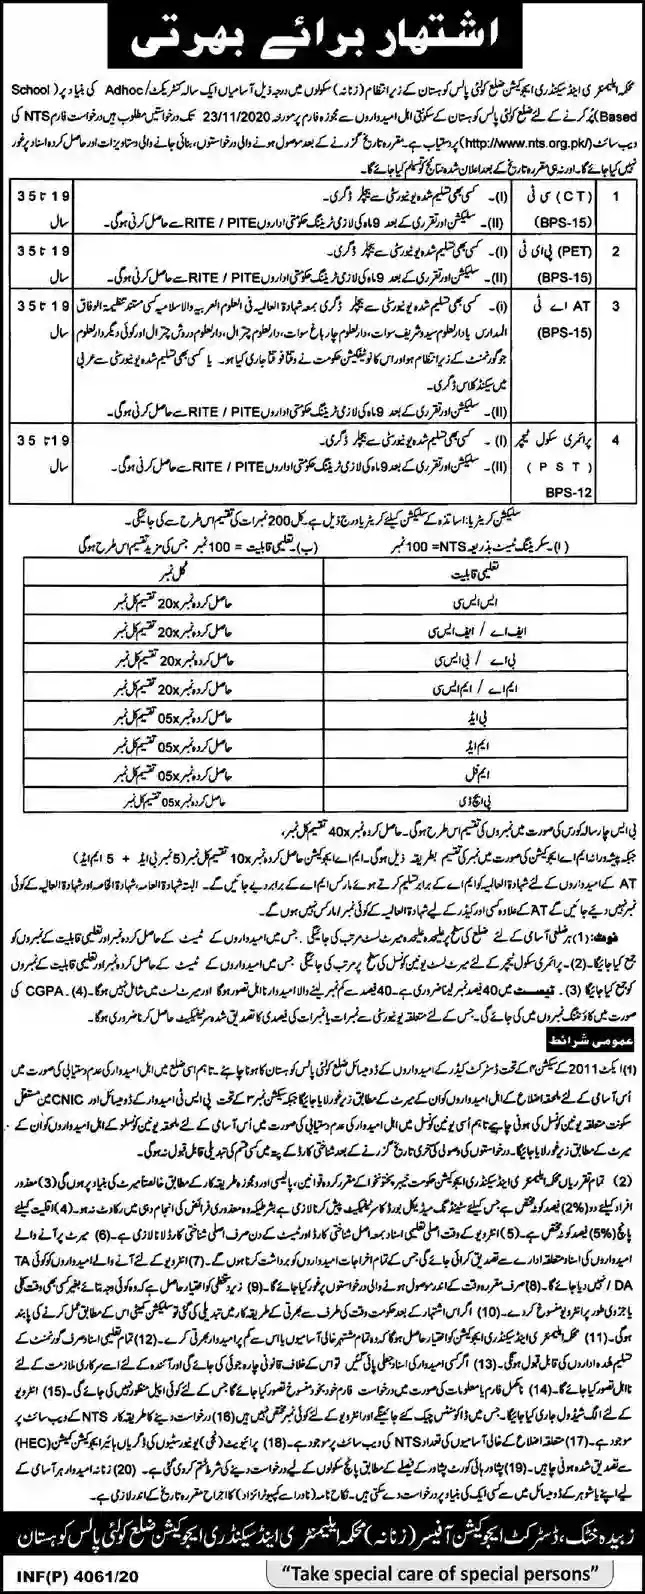 Elementary And Secondary Education Department Kohistan Teaching Jobs 2020